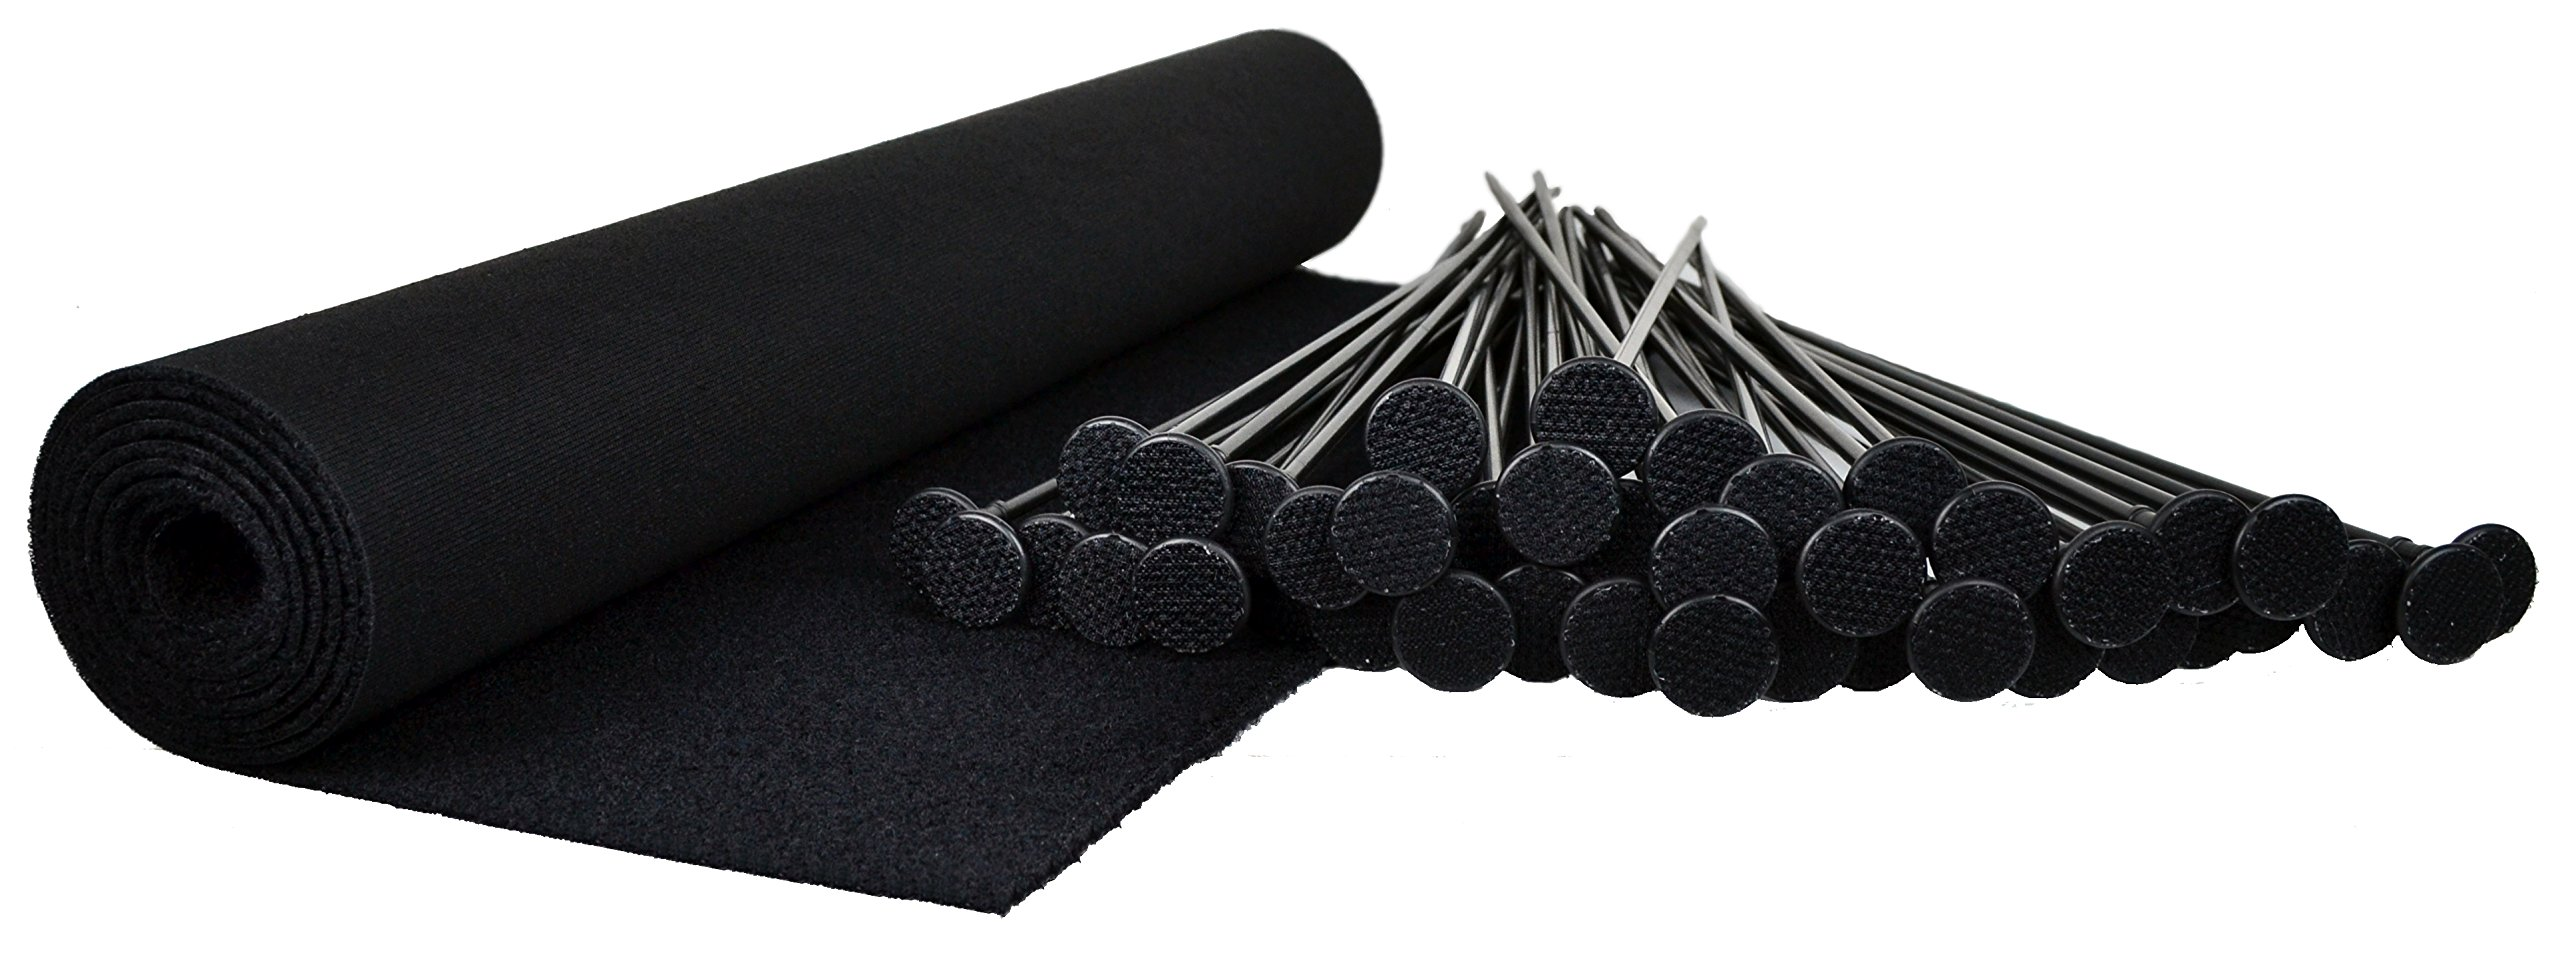 Gun Storage Solutions Pack of 40 Rifle Rods Starter Kit with Loop Fabric (60 x 19-Inch)